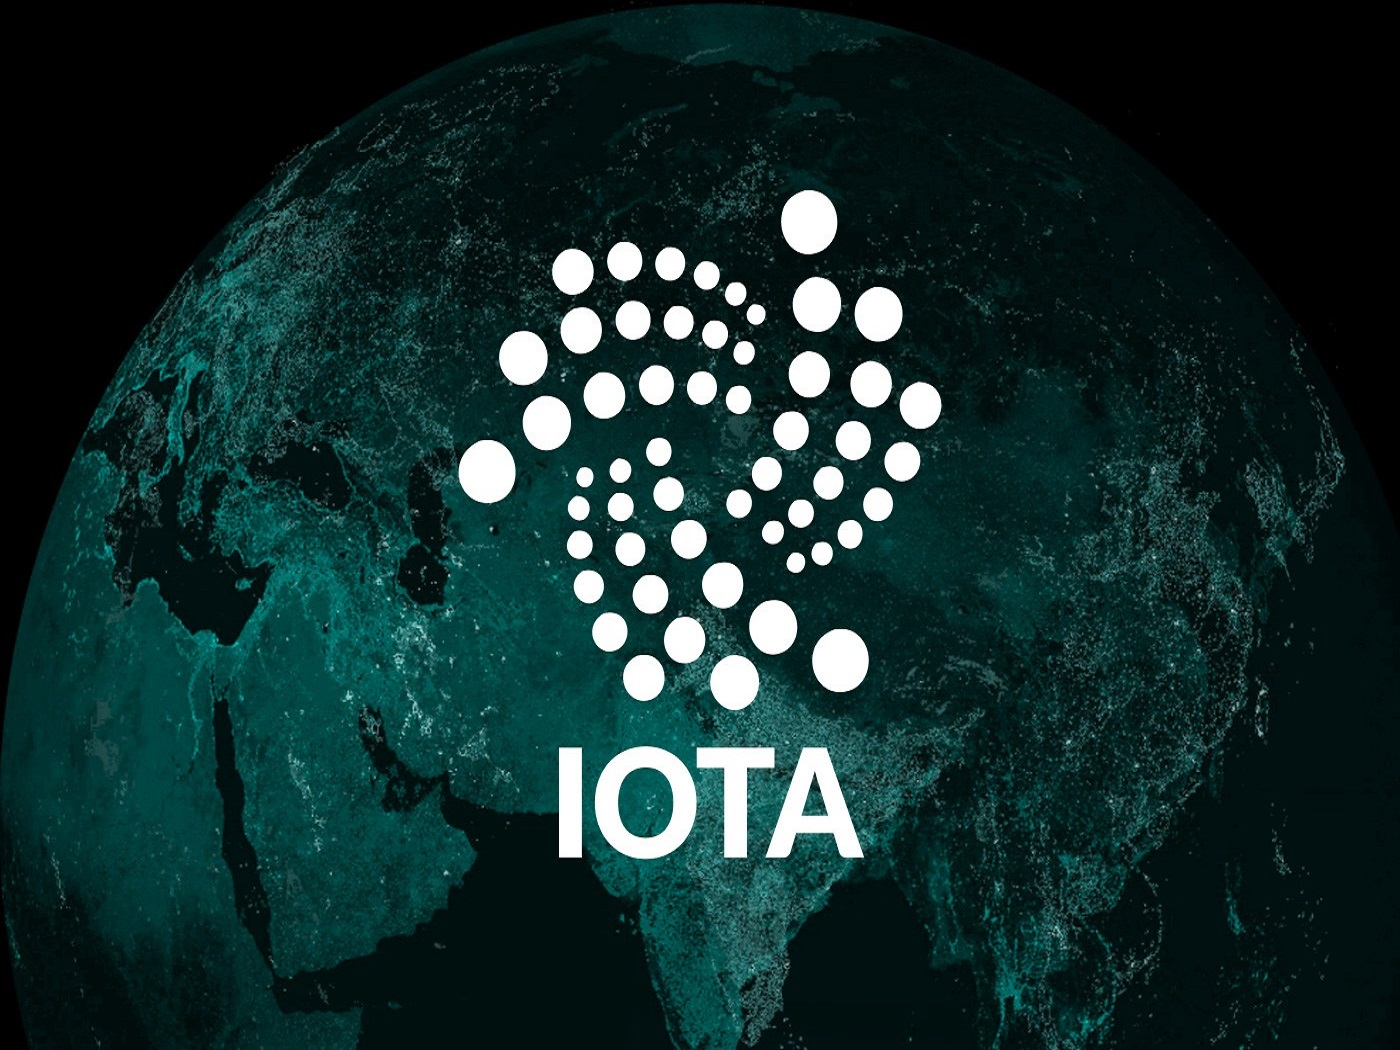 IOTA price analysis and forecast (Tuesday, August 14): A short-term correction may occur, a long-term recovery is uncertain